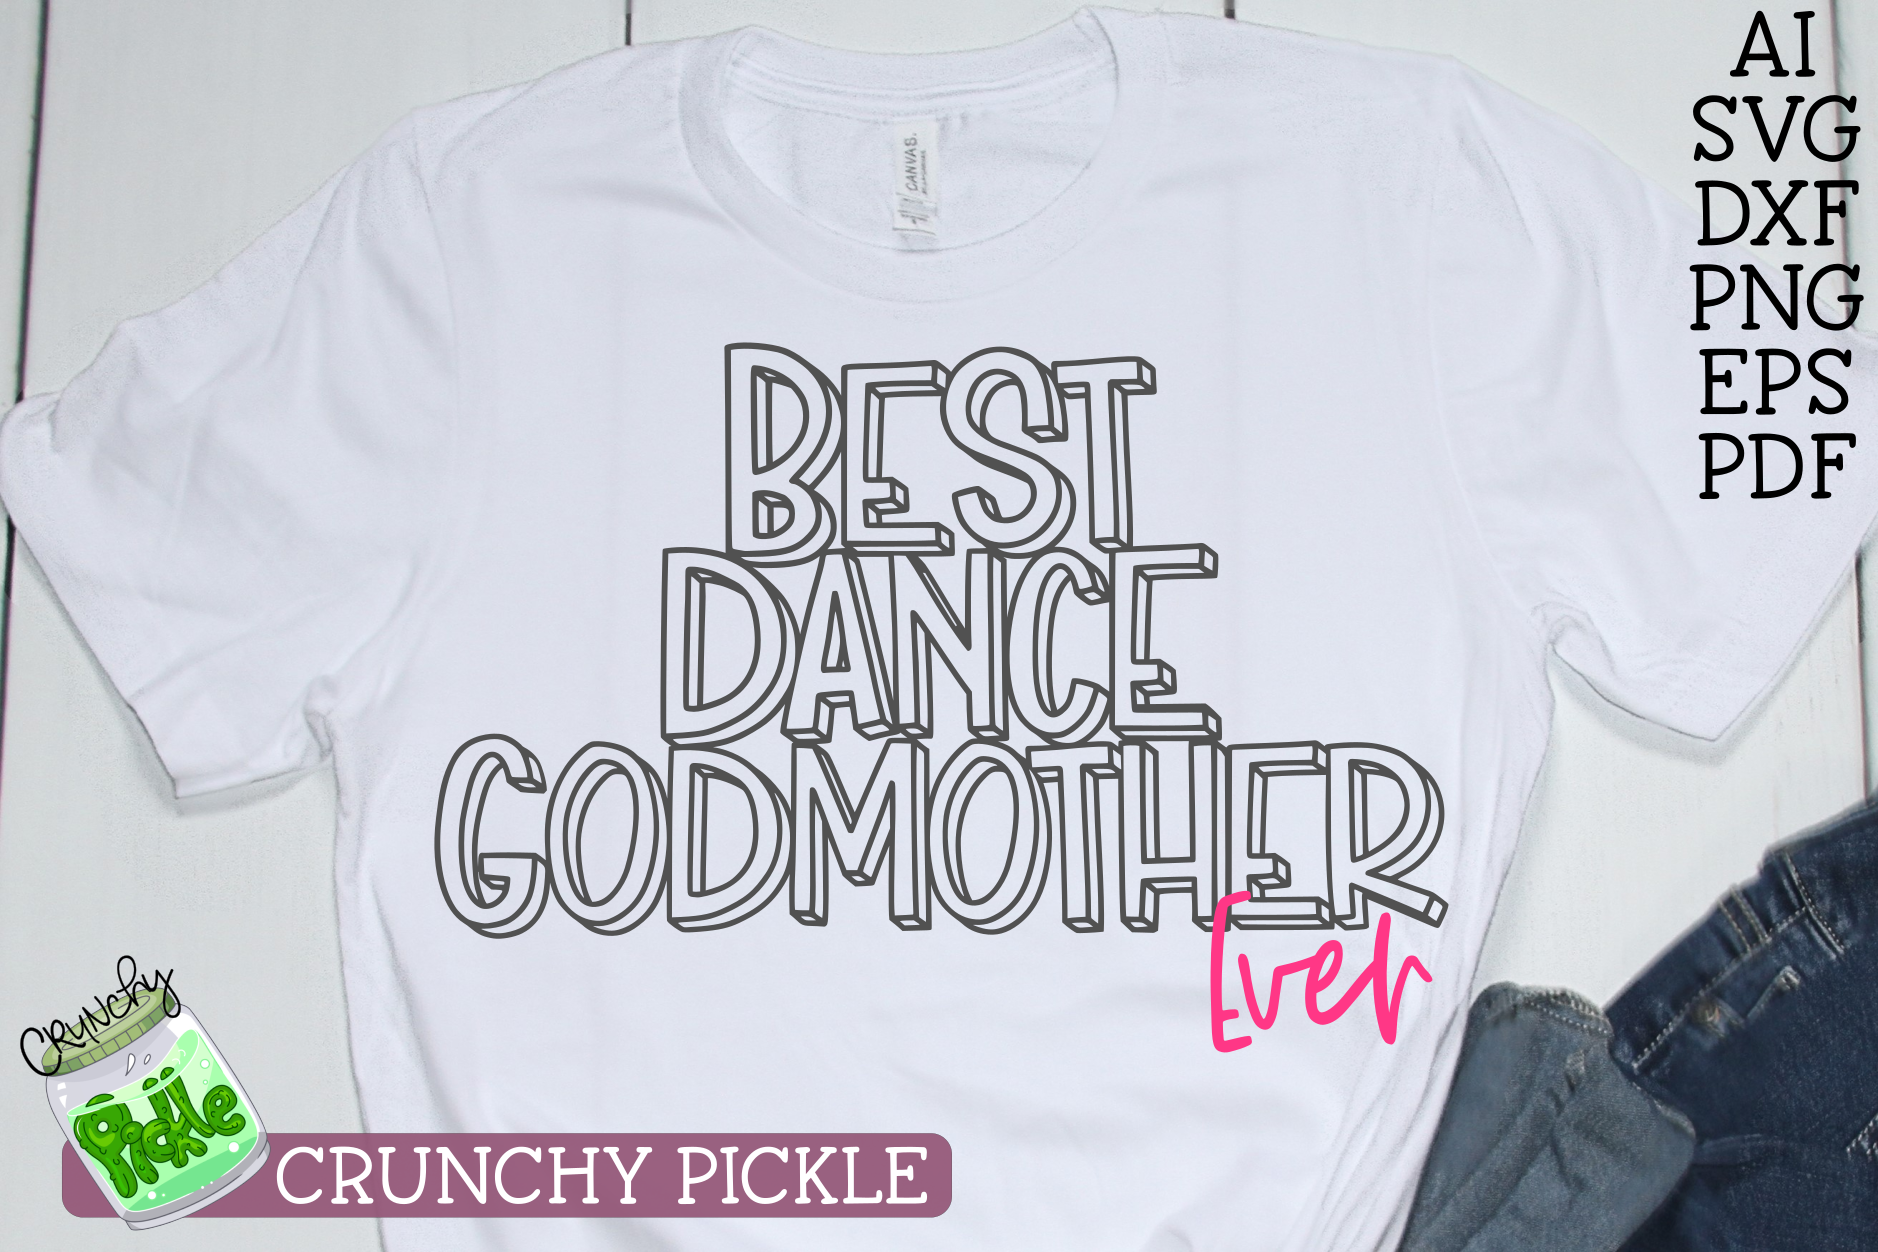 Best Dance Godmother Ever Sports SVG Cut File example image 3